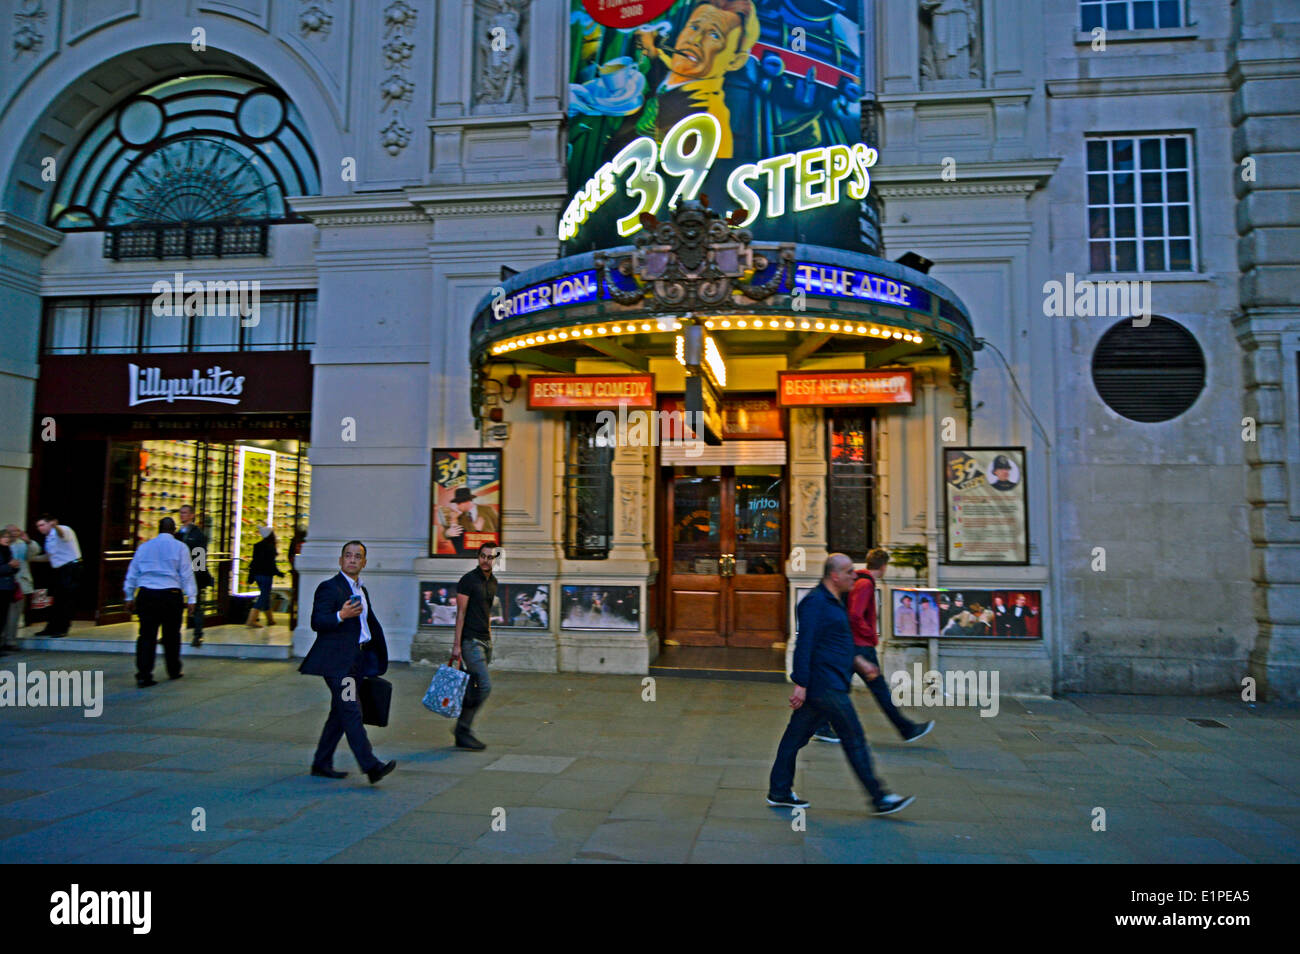 The Criterion Theatre, West End, City of Westminster, London, England, United Kingdom - Stock Image